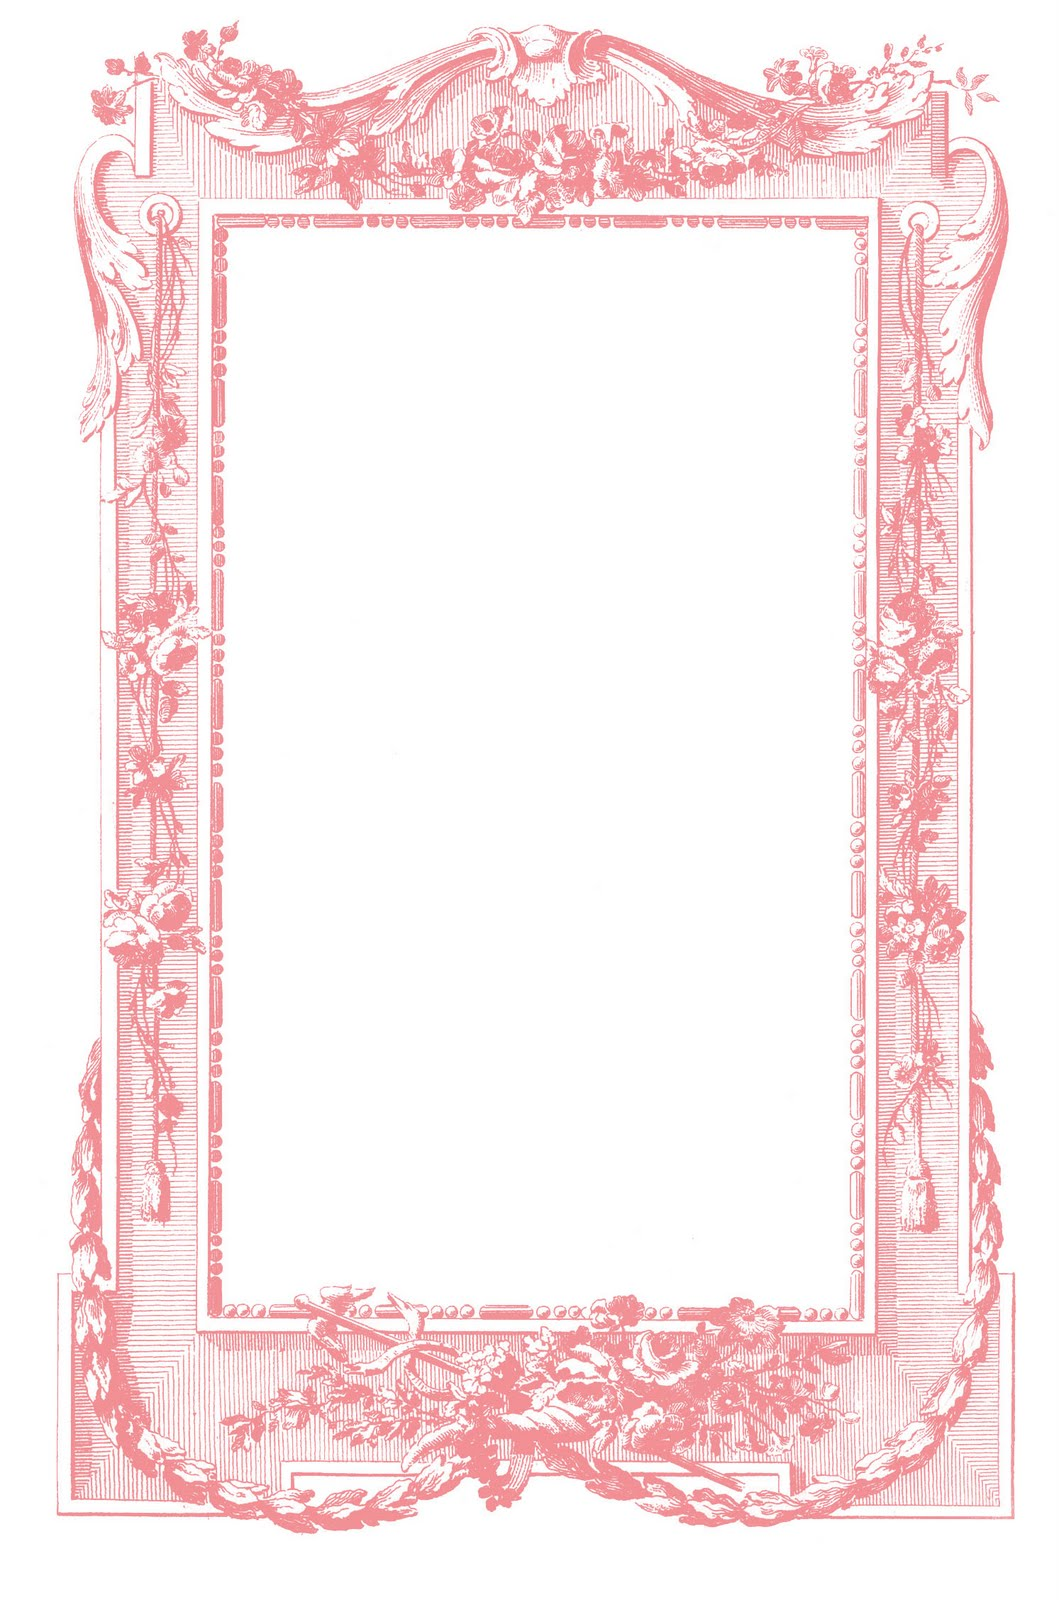 Antique Images - Fabulous French Graphic Frames - The ...